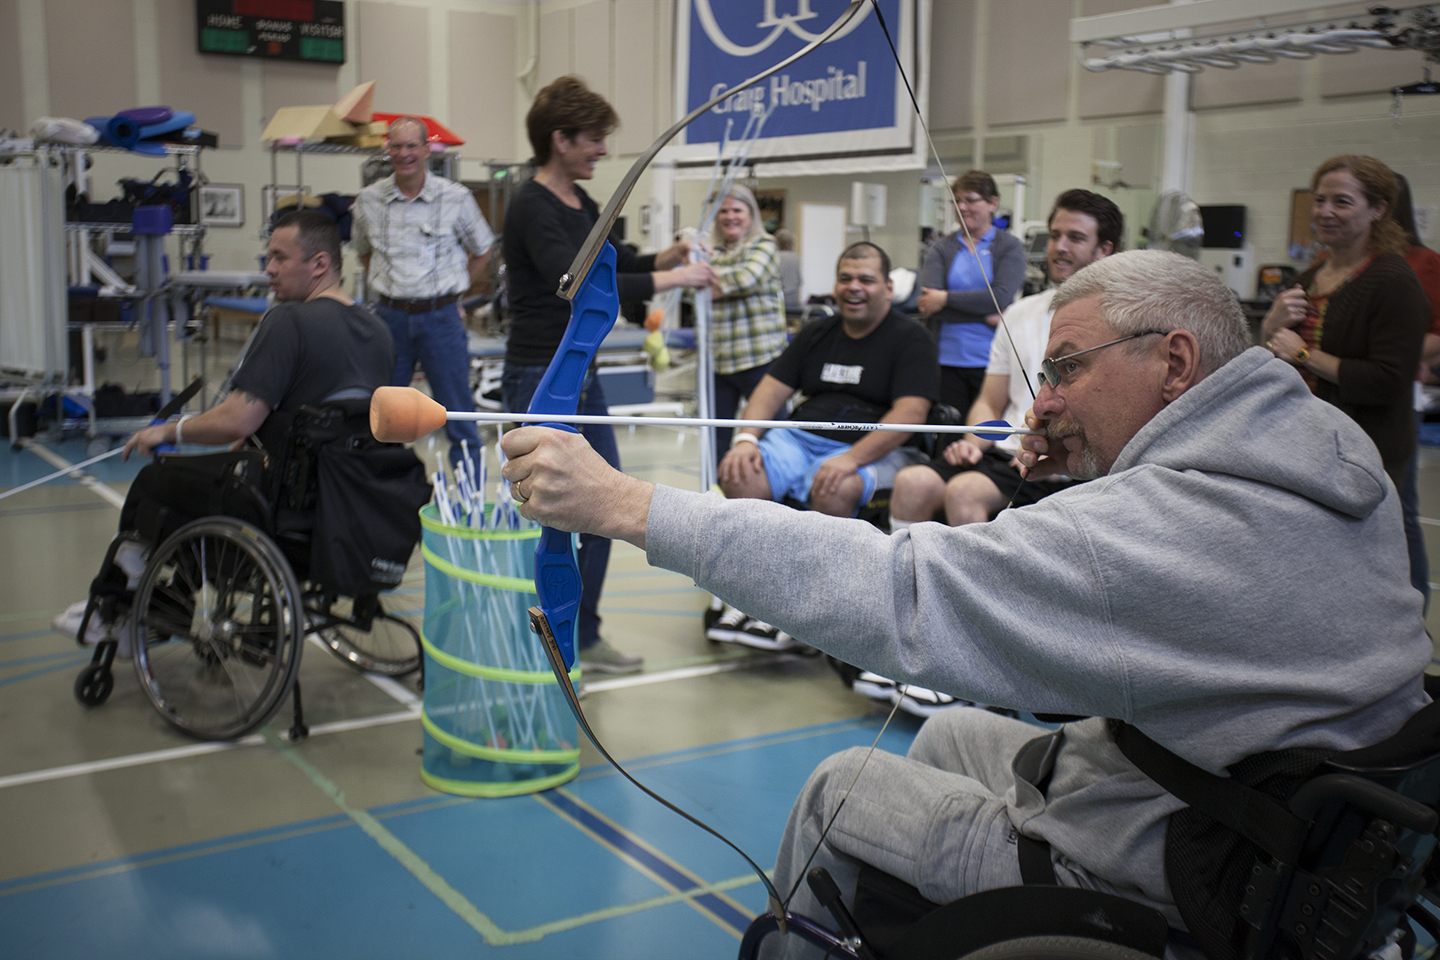 Craig Hospital | Spinal Cord Injury Rehabilitation Patient Participating in Therapeutic Recreation